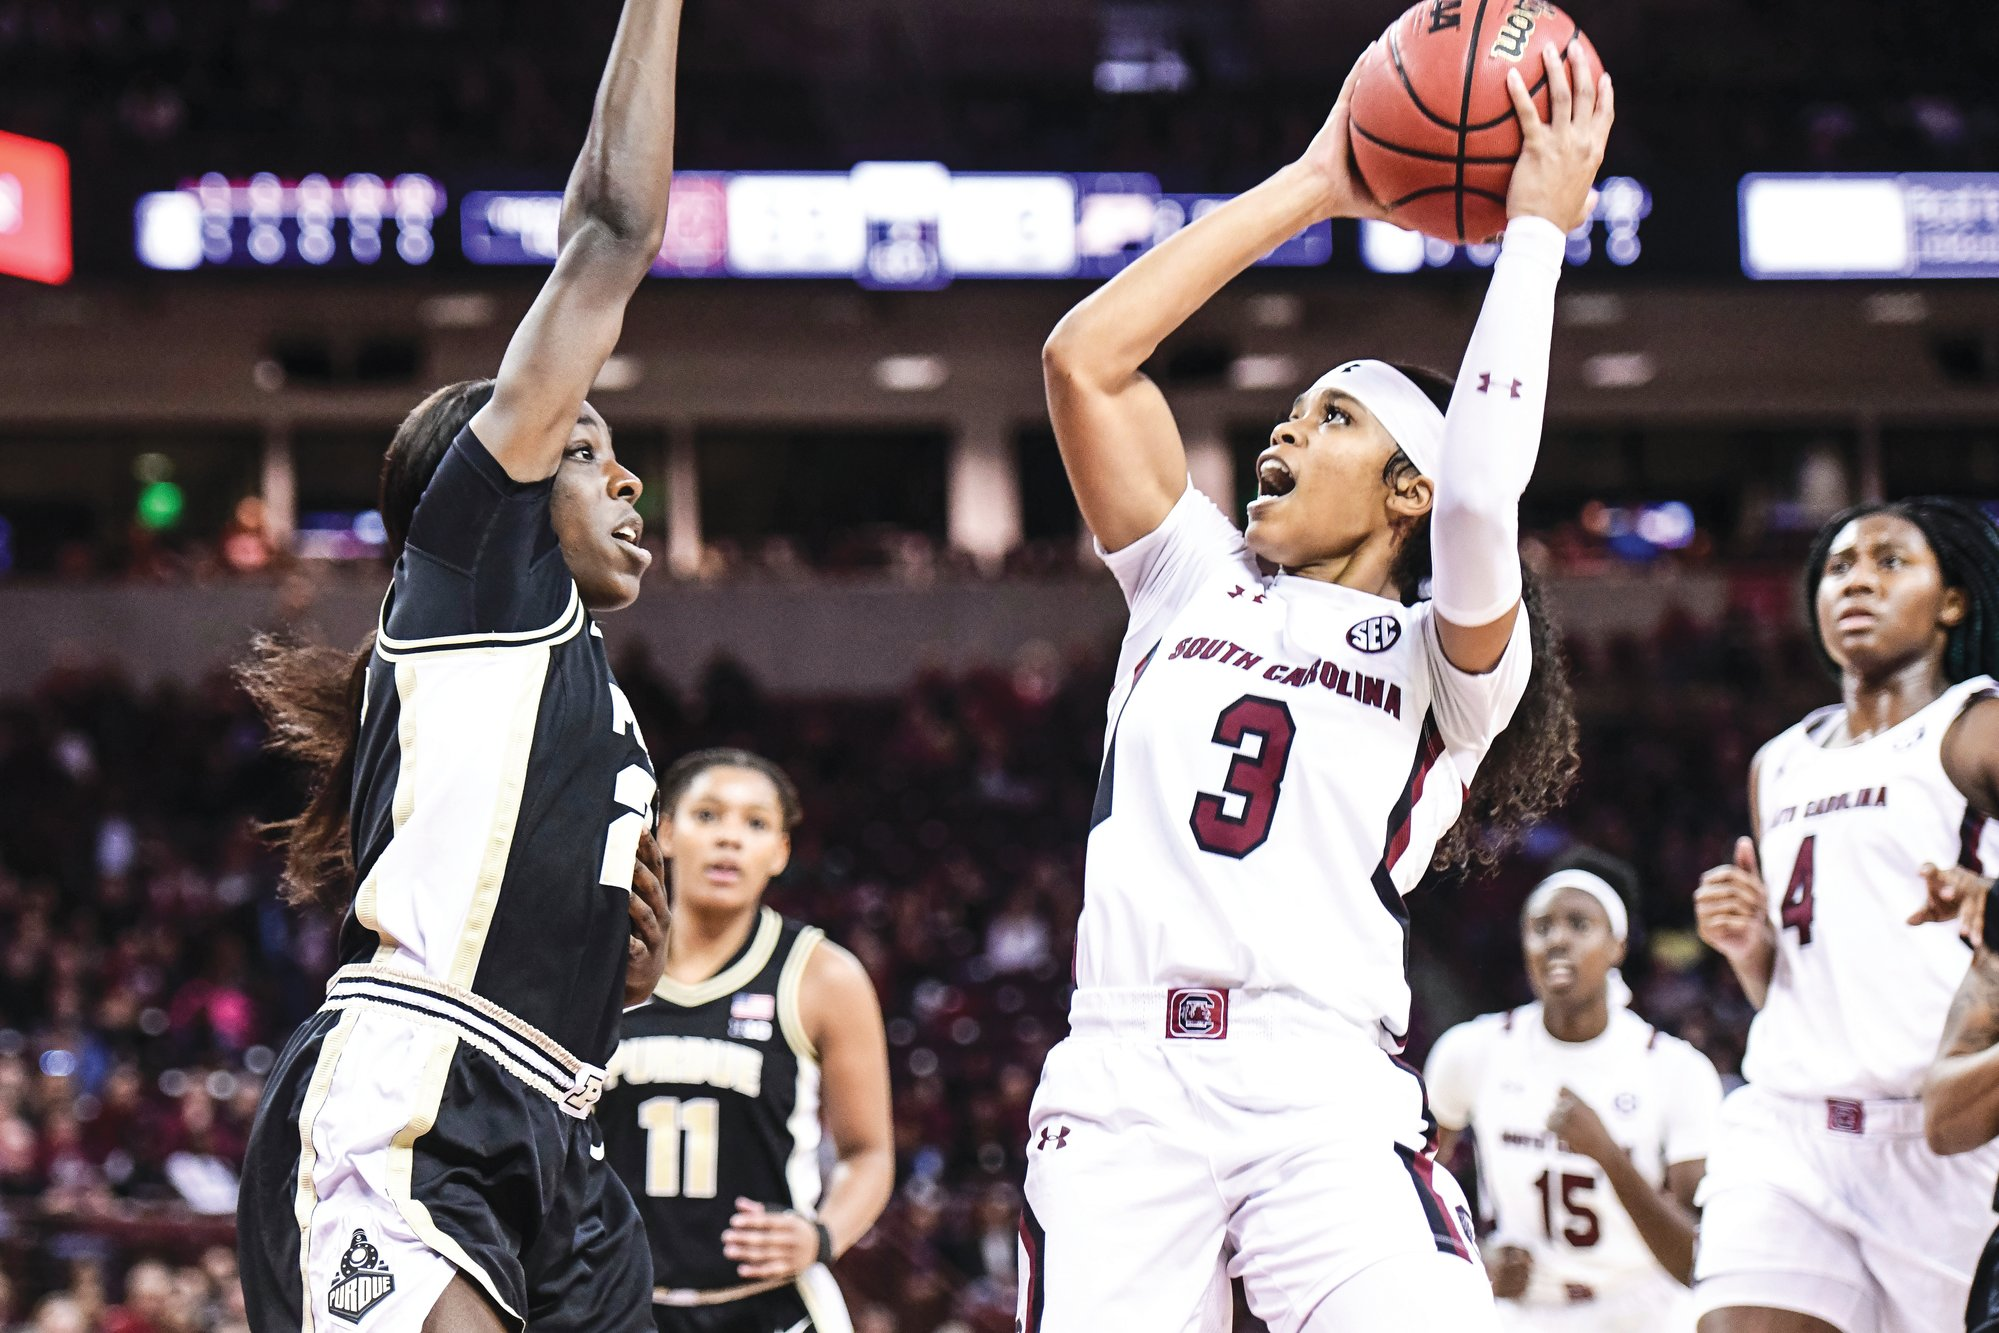 South Carolina guard Destanni Henderson (3) attempts a shot against Purdue guard Tamara Farquhar, left, during the Gamecocks' 85-49 win on Sunday in Columbia.